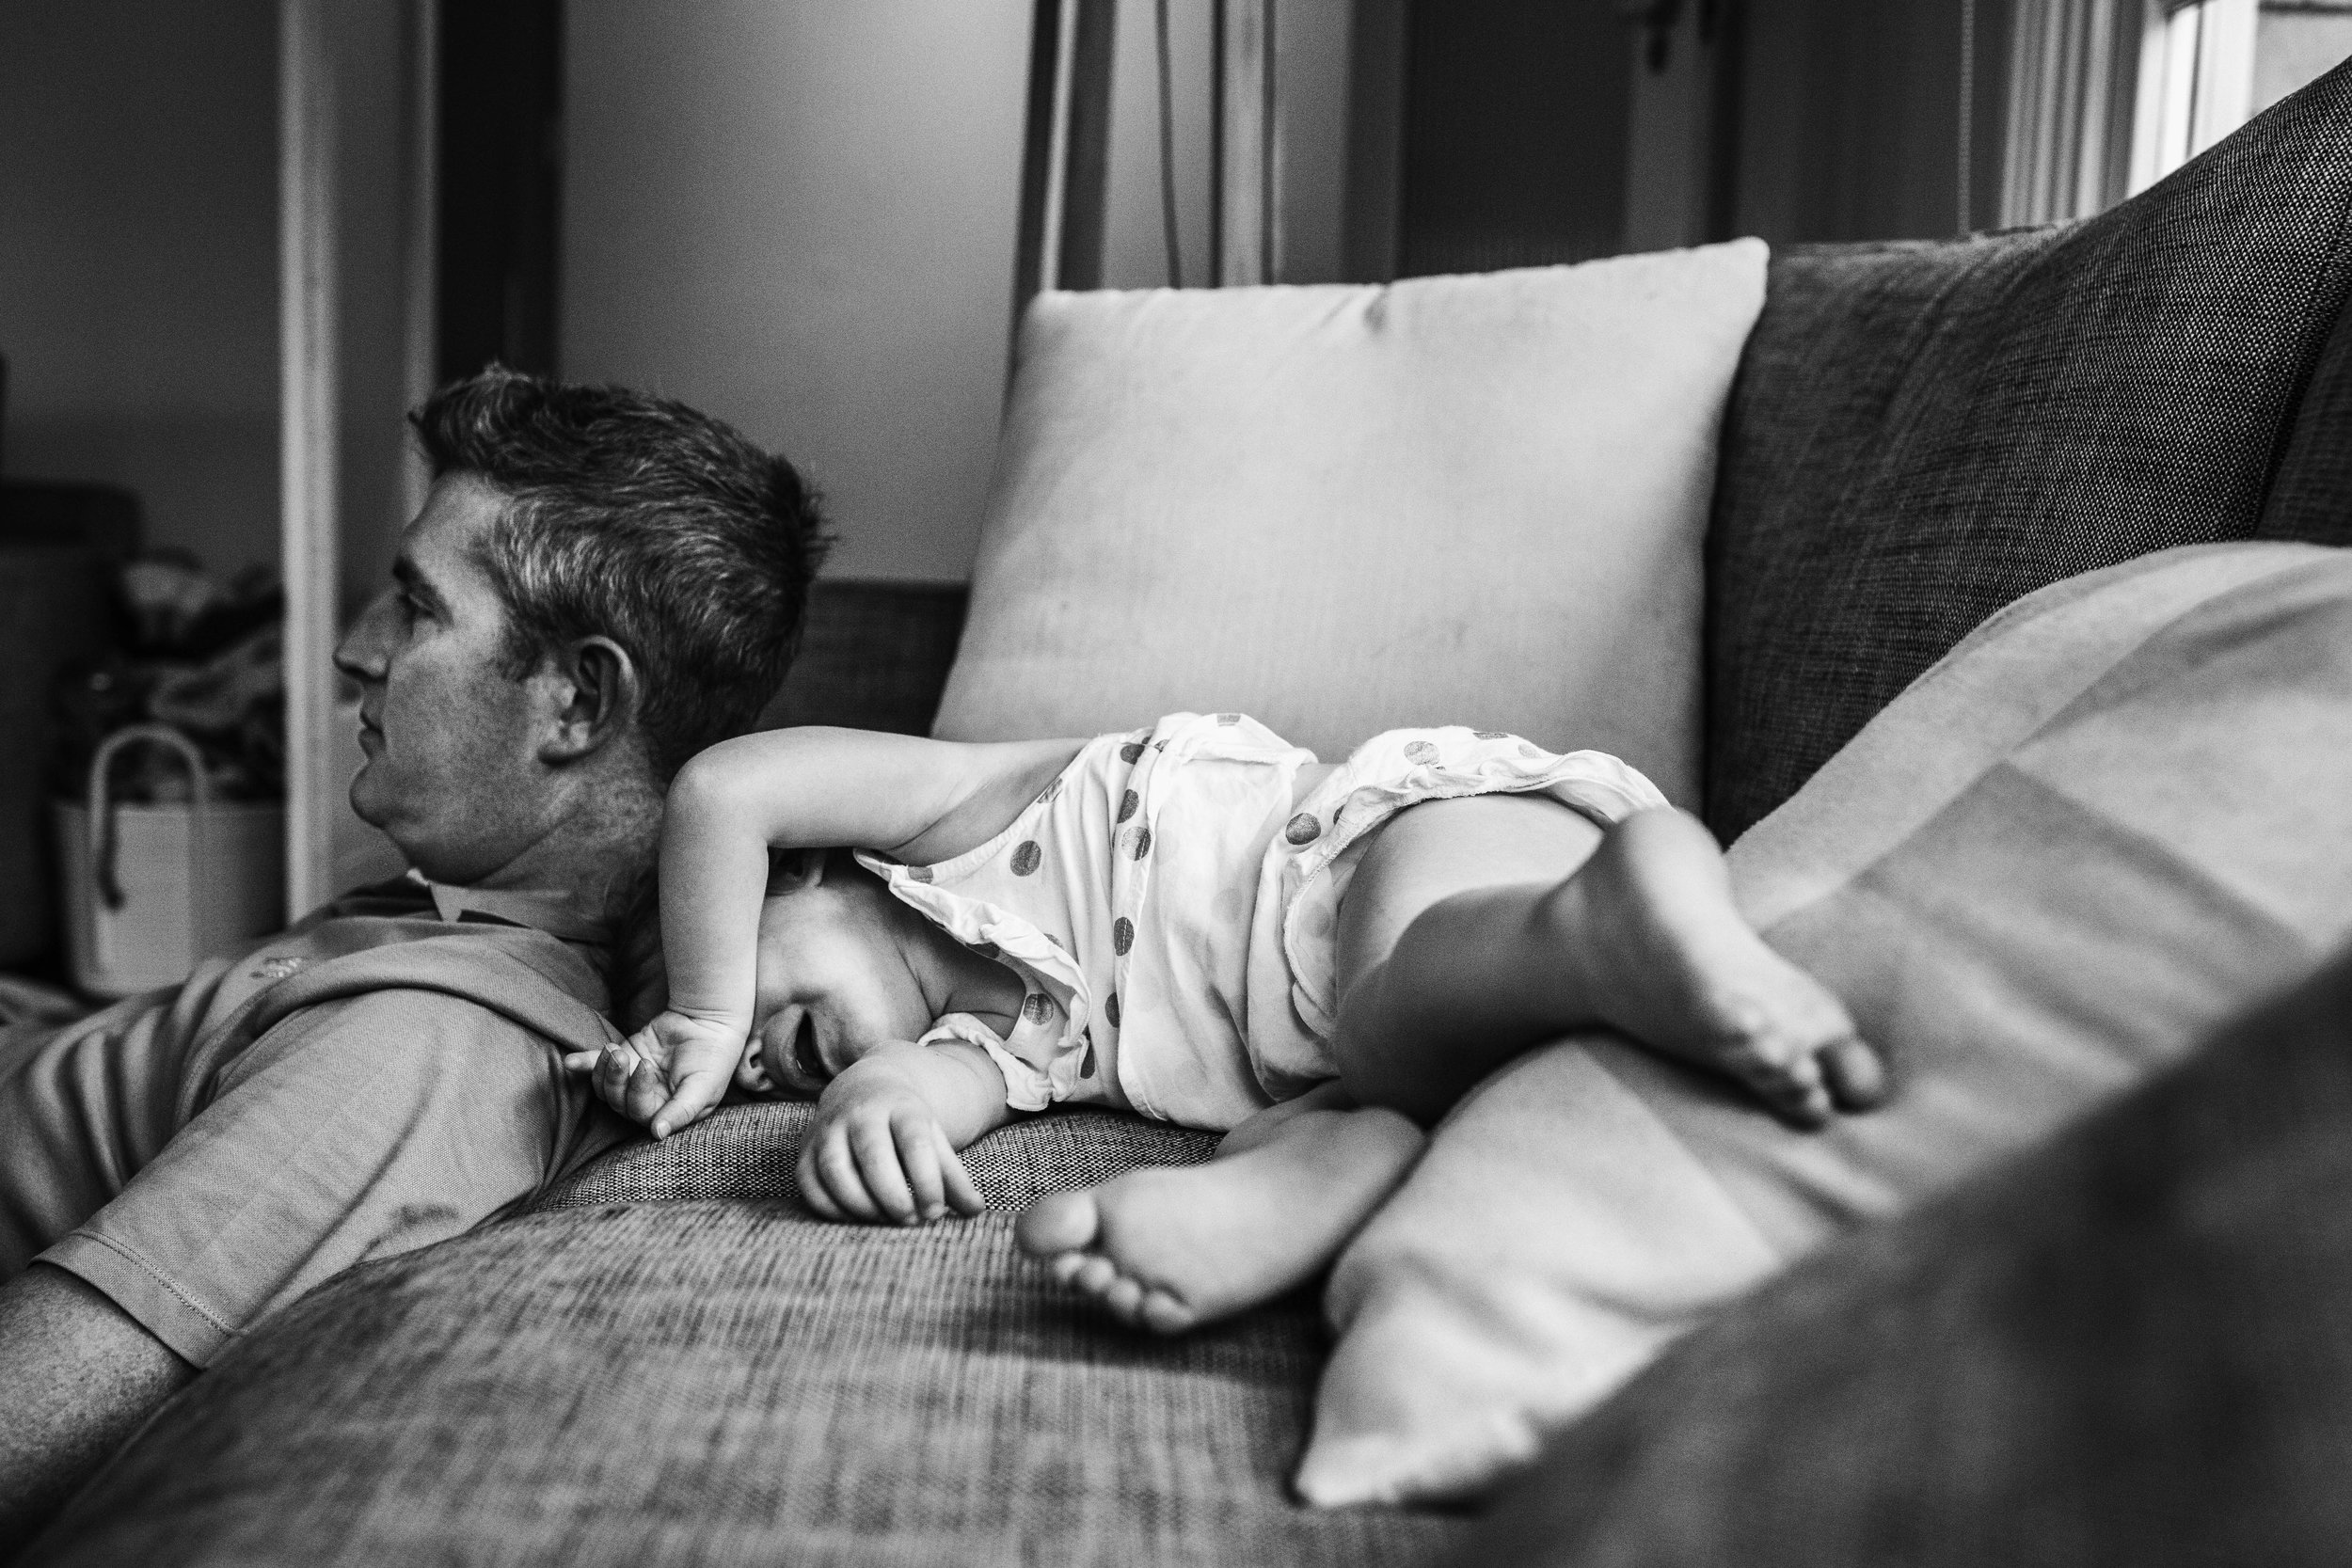 little-girl-tantruming-on-sofa-while-dad-sits-beside-her.jpg